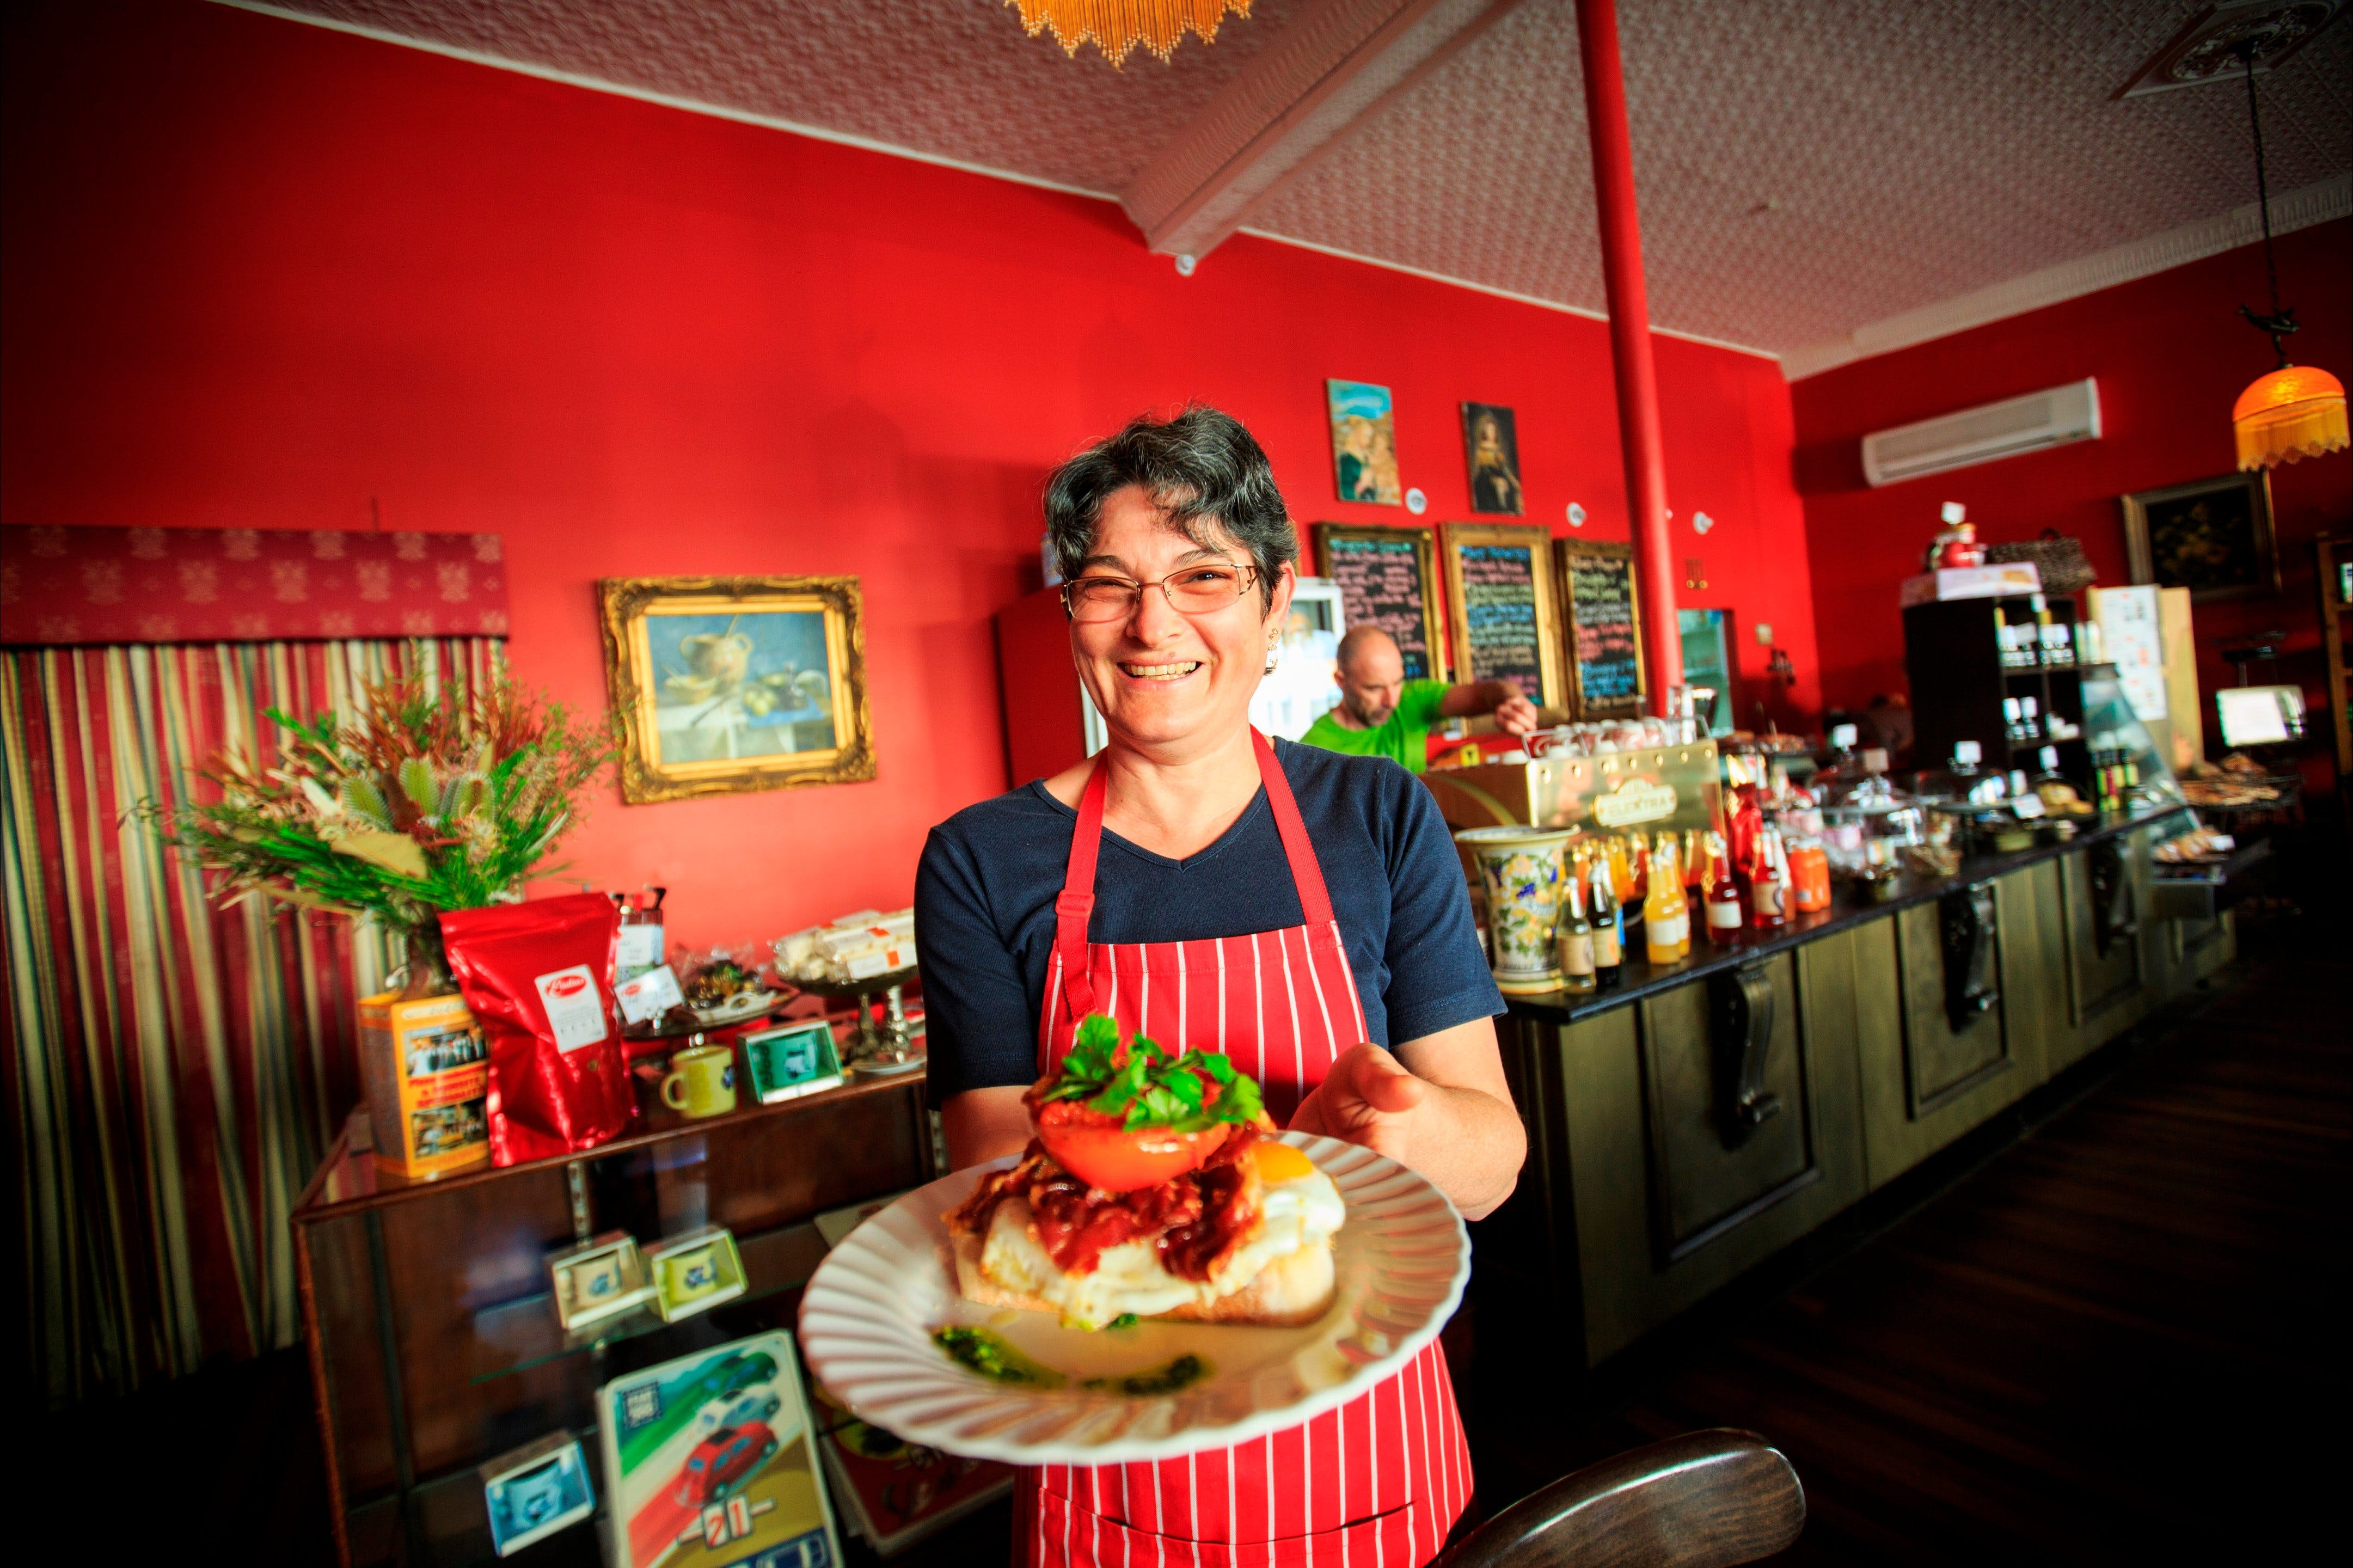 Gympie Region Food Trail - Broome Tourism